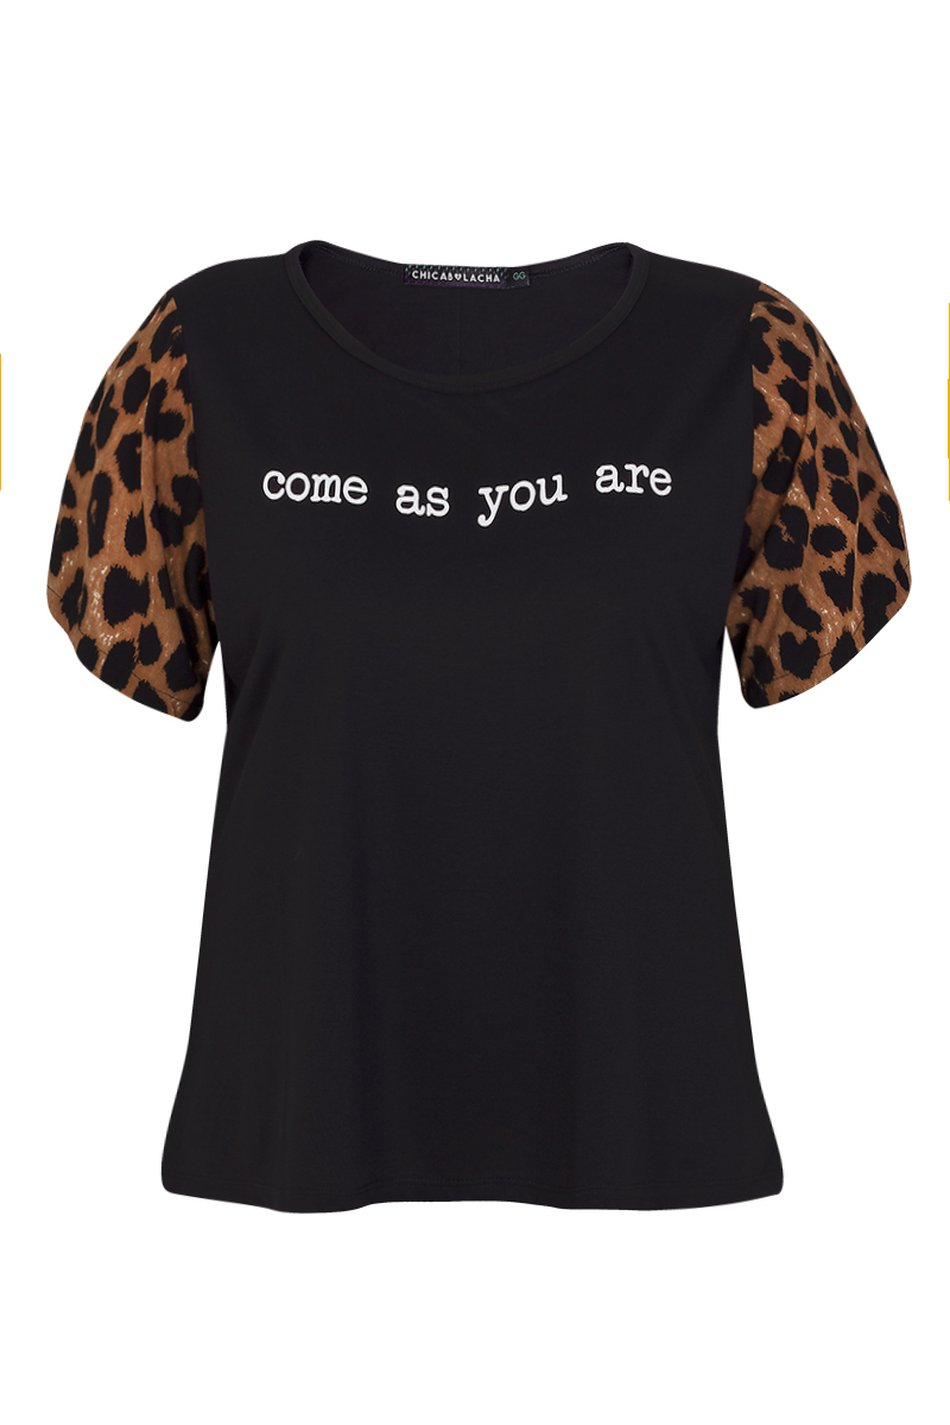 T-SHIRT COME AS YOU ARE